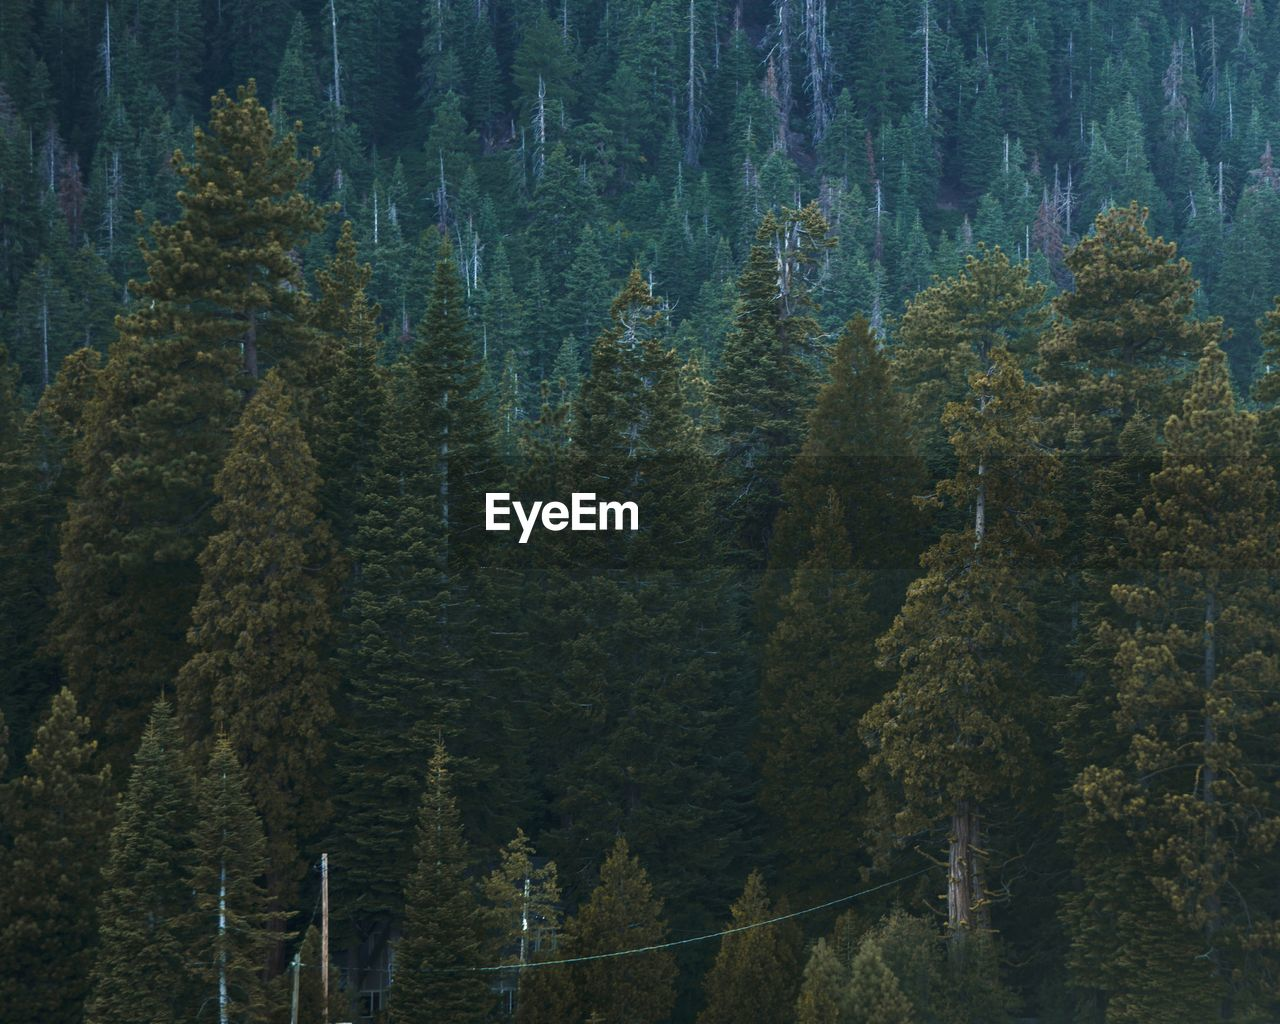 PINE TREES IN FOREST AGAINST MOUNTAIN